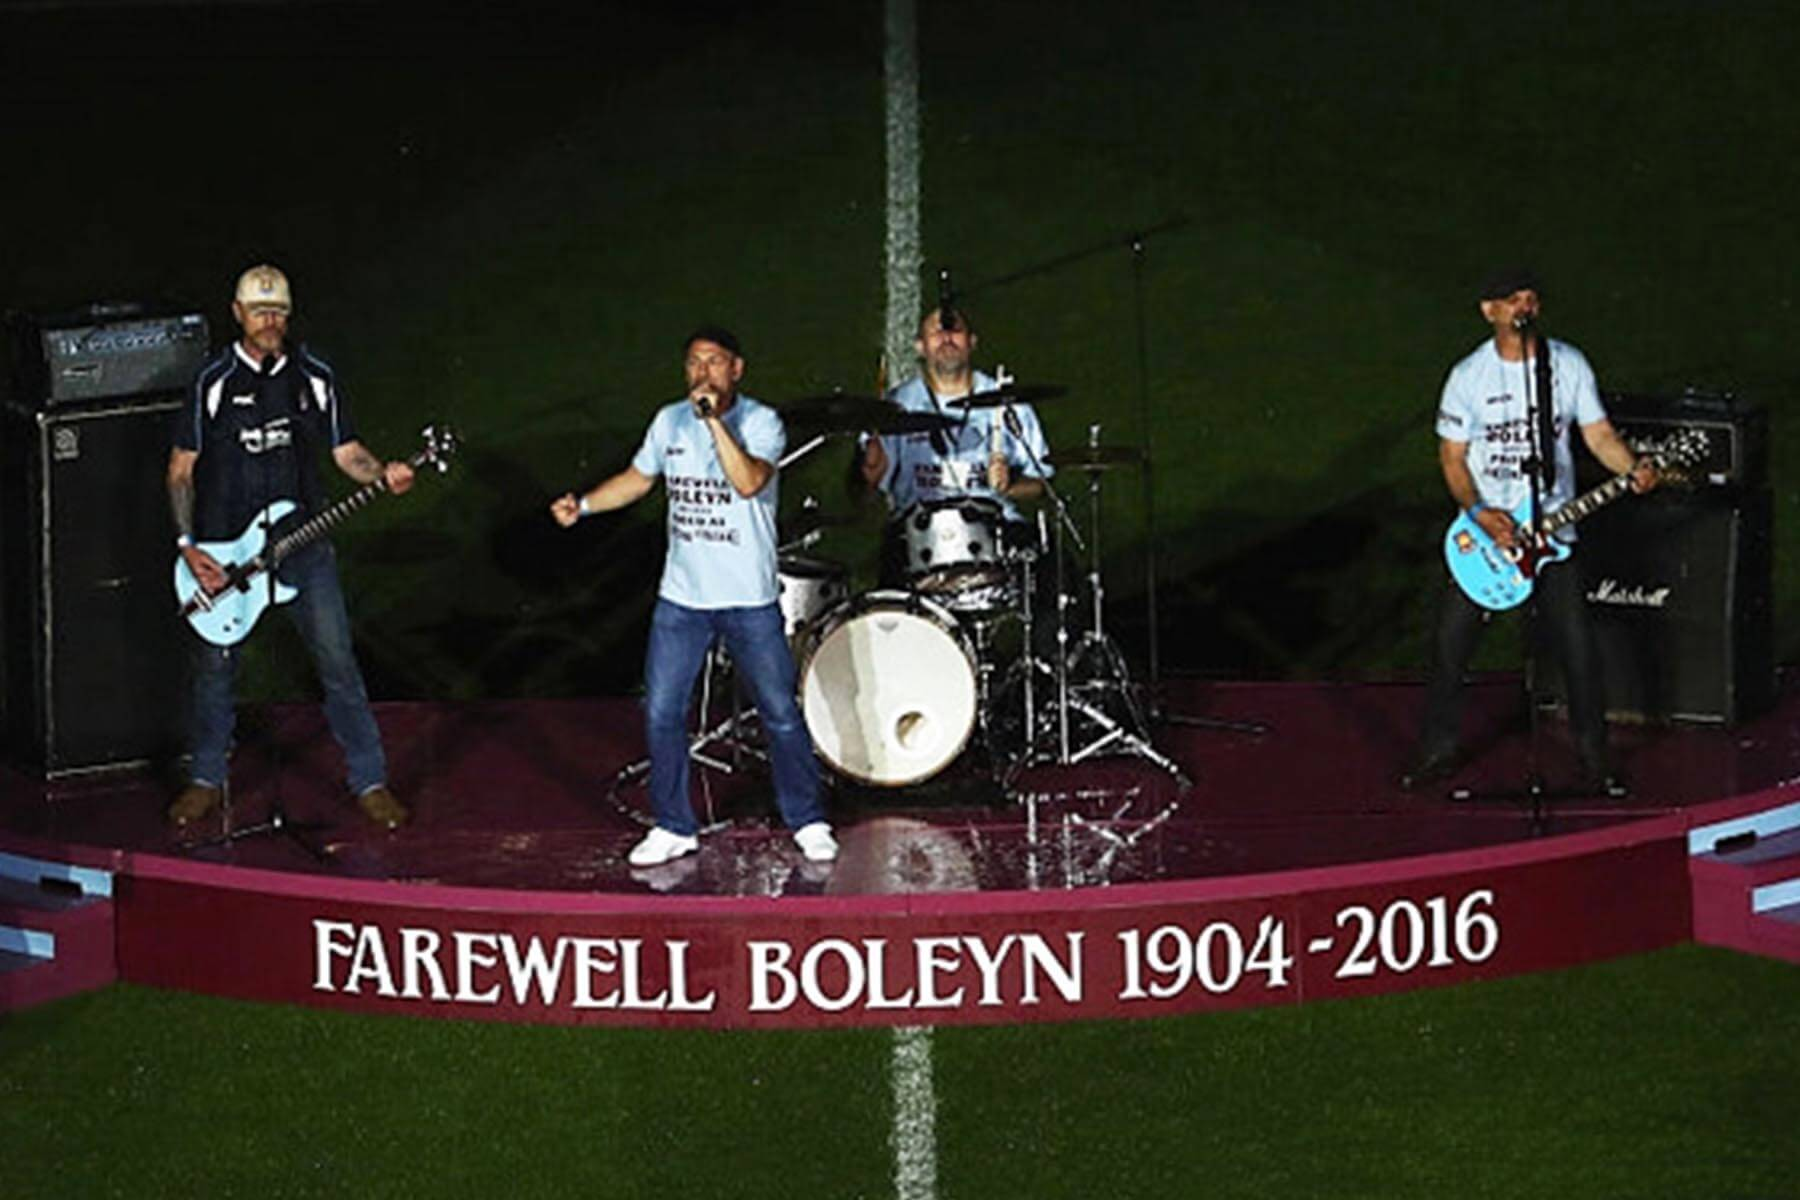 Bespoke Performance Stage Hire for Farewell Boleyn Ceremony at Upton Park West Ham